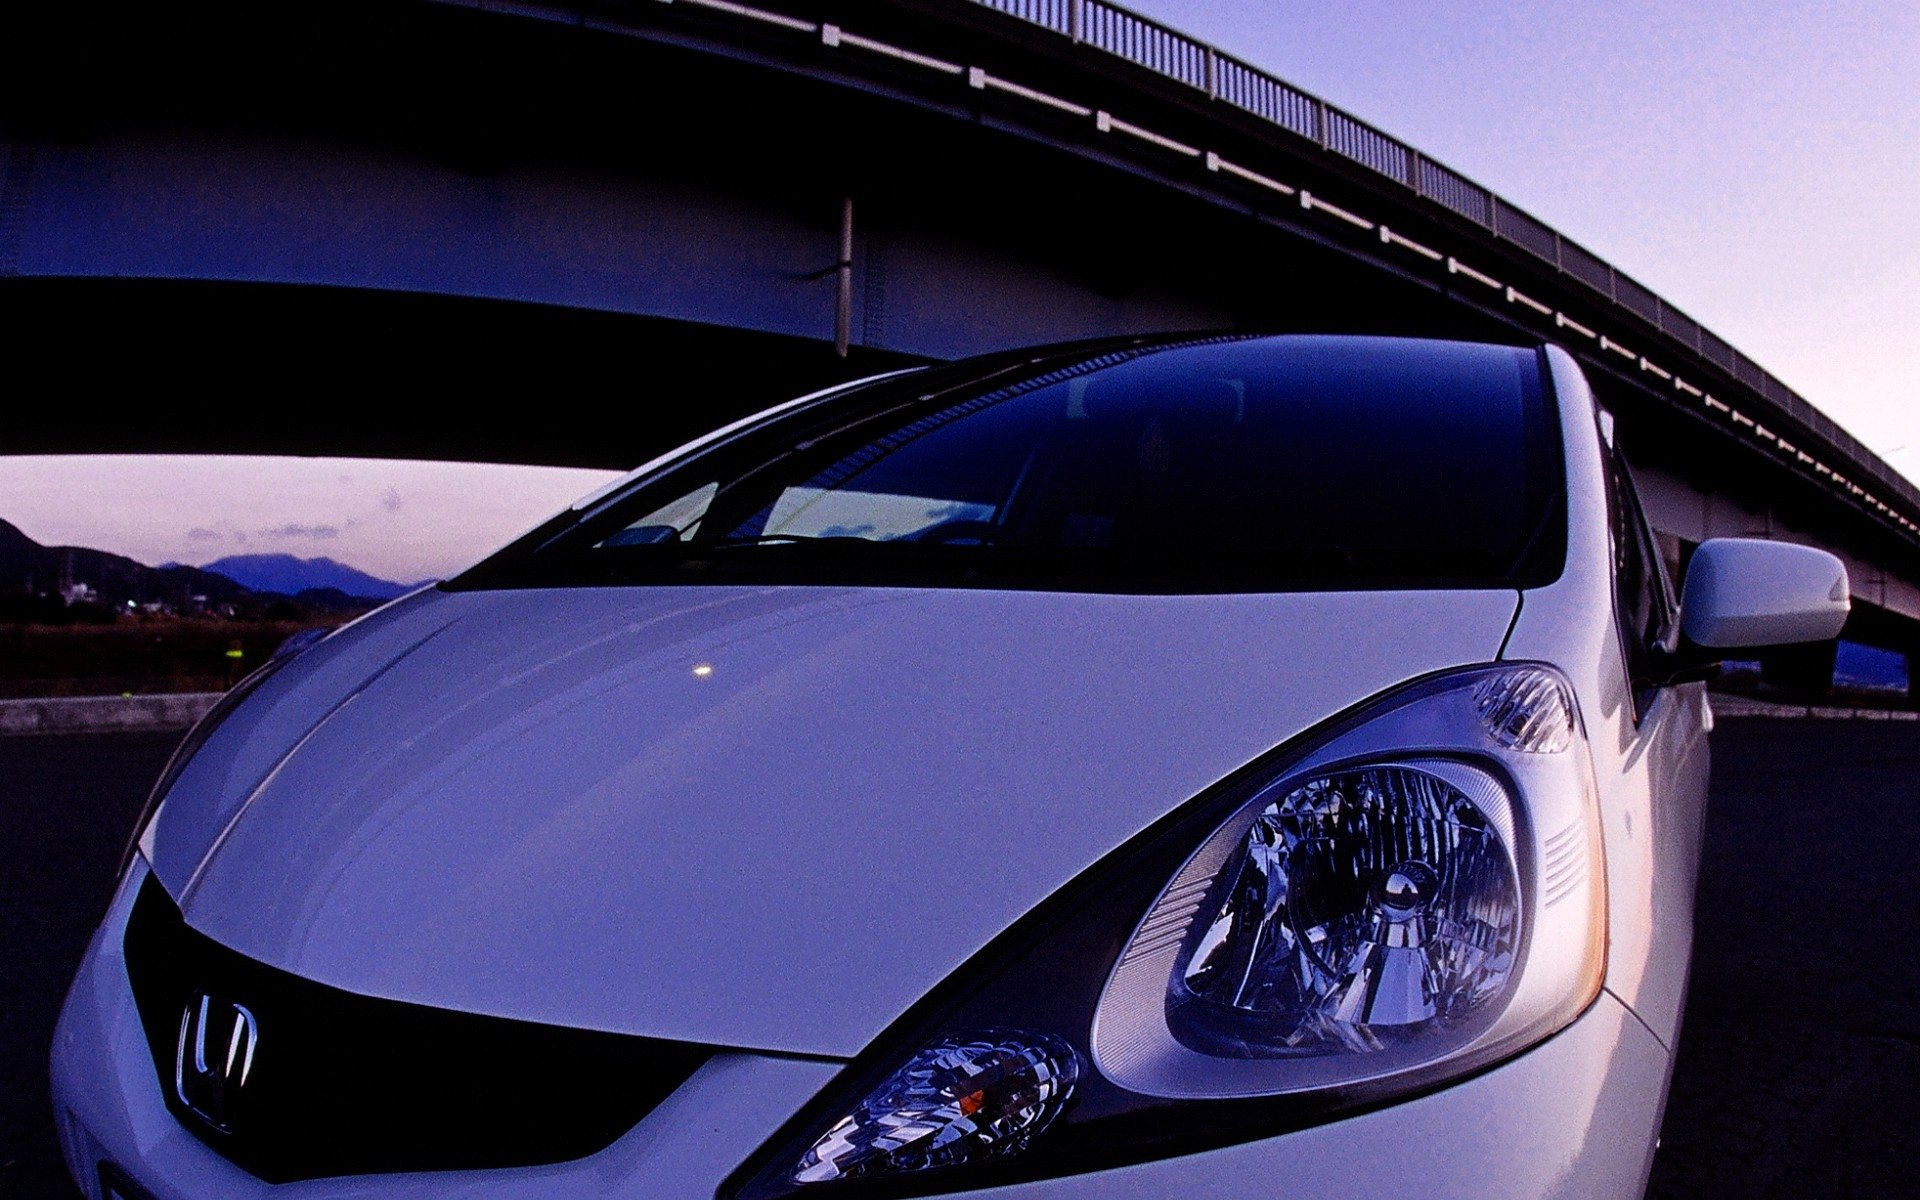 2 Honda Jazz Hd Wallpapers Background Images Wallpaper Abyss